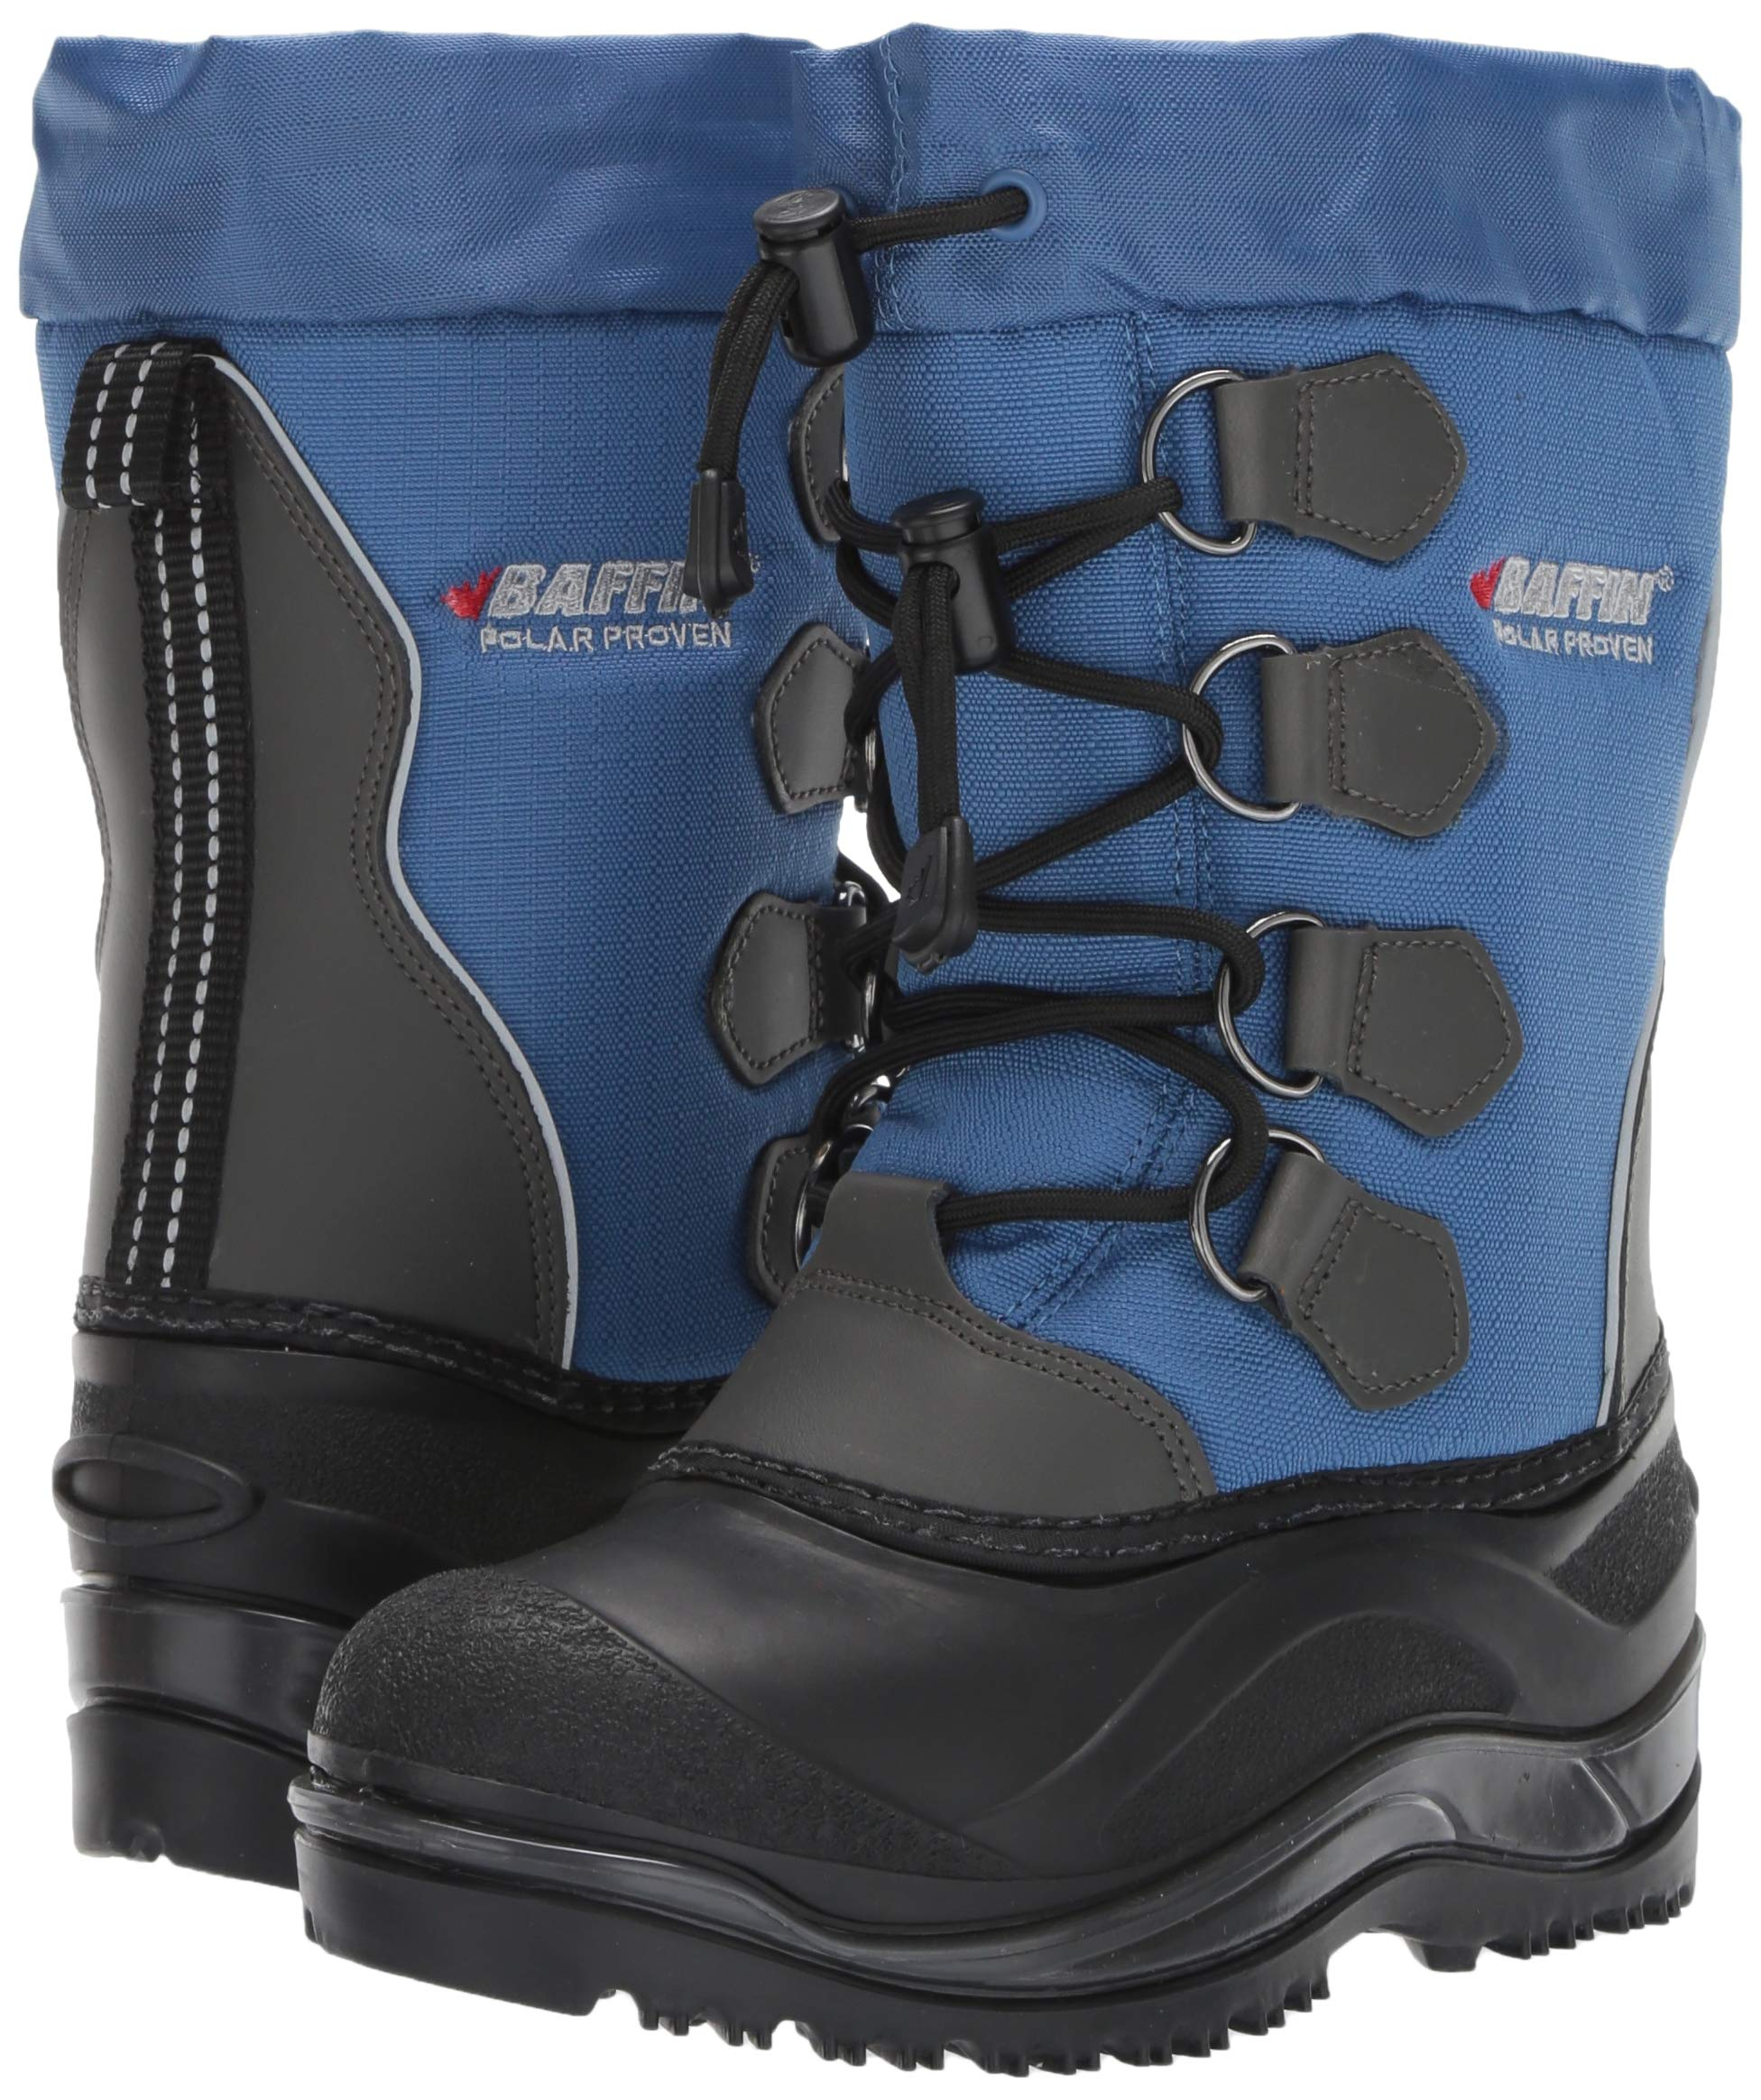 Baffin Unisex SNOWPACK Snow Boot, Blue, 2 Youth US Little Kid by Baffin (Image #6)